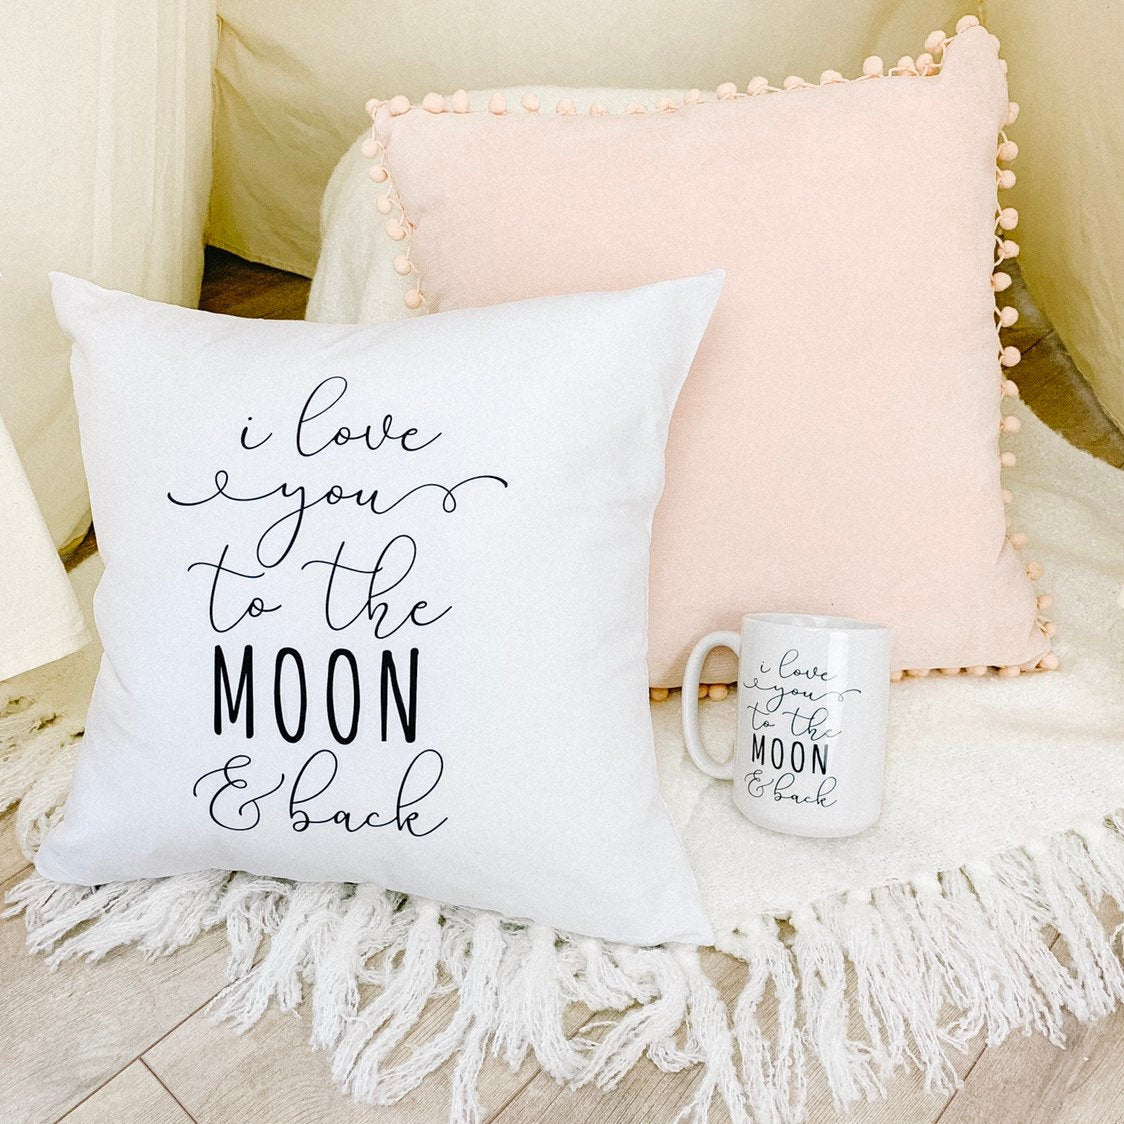 I Love You To The Moon and Back Pillow and Coffee Mug Gift Set